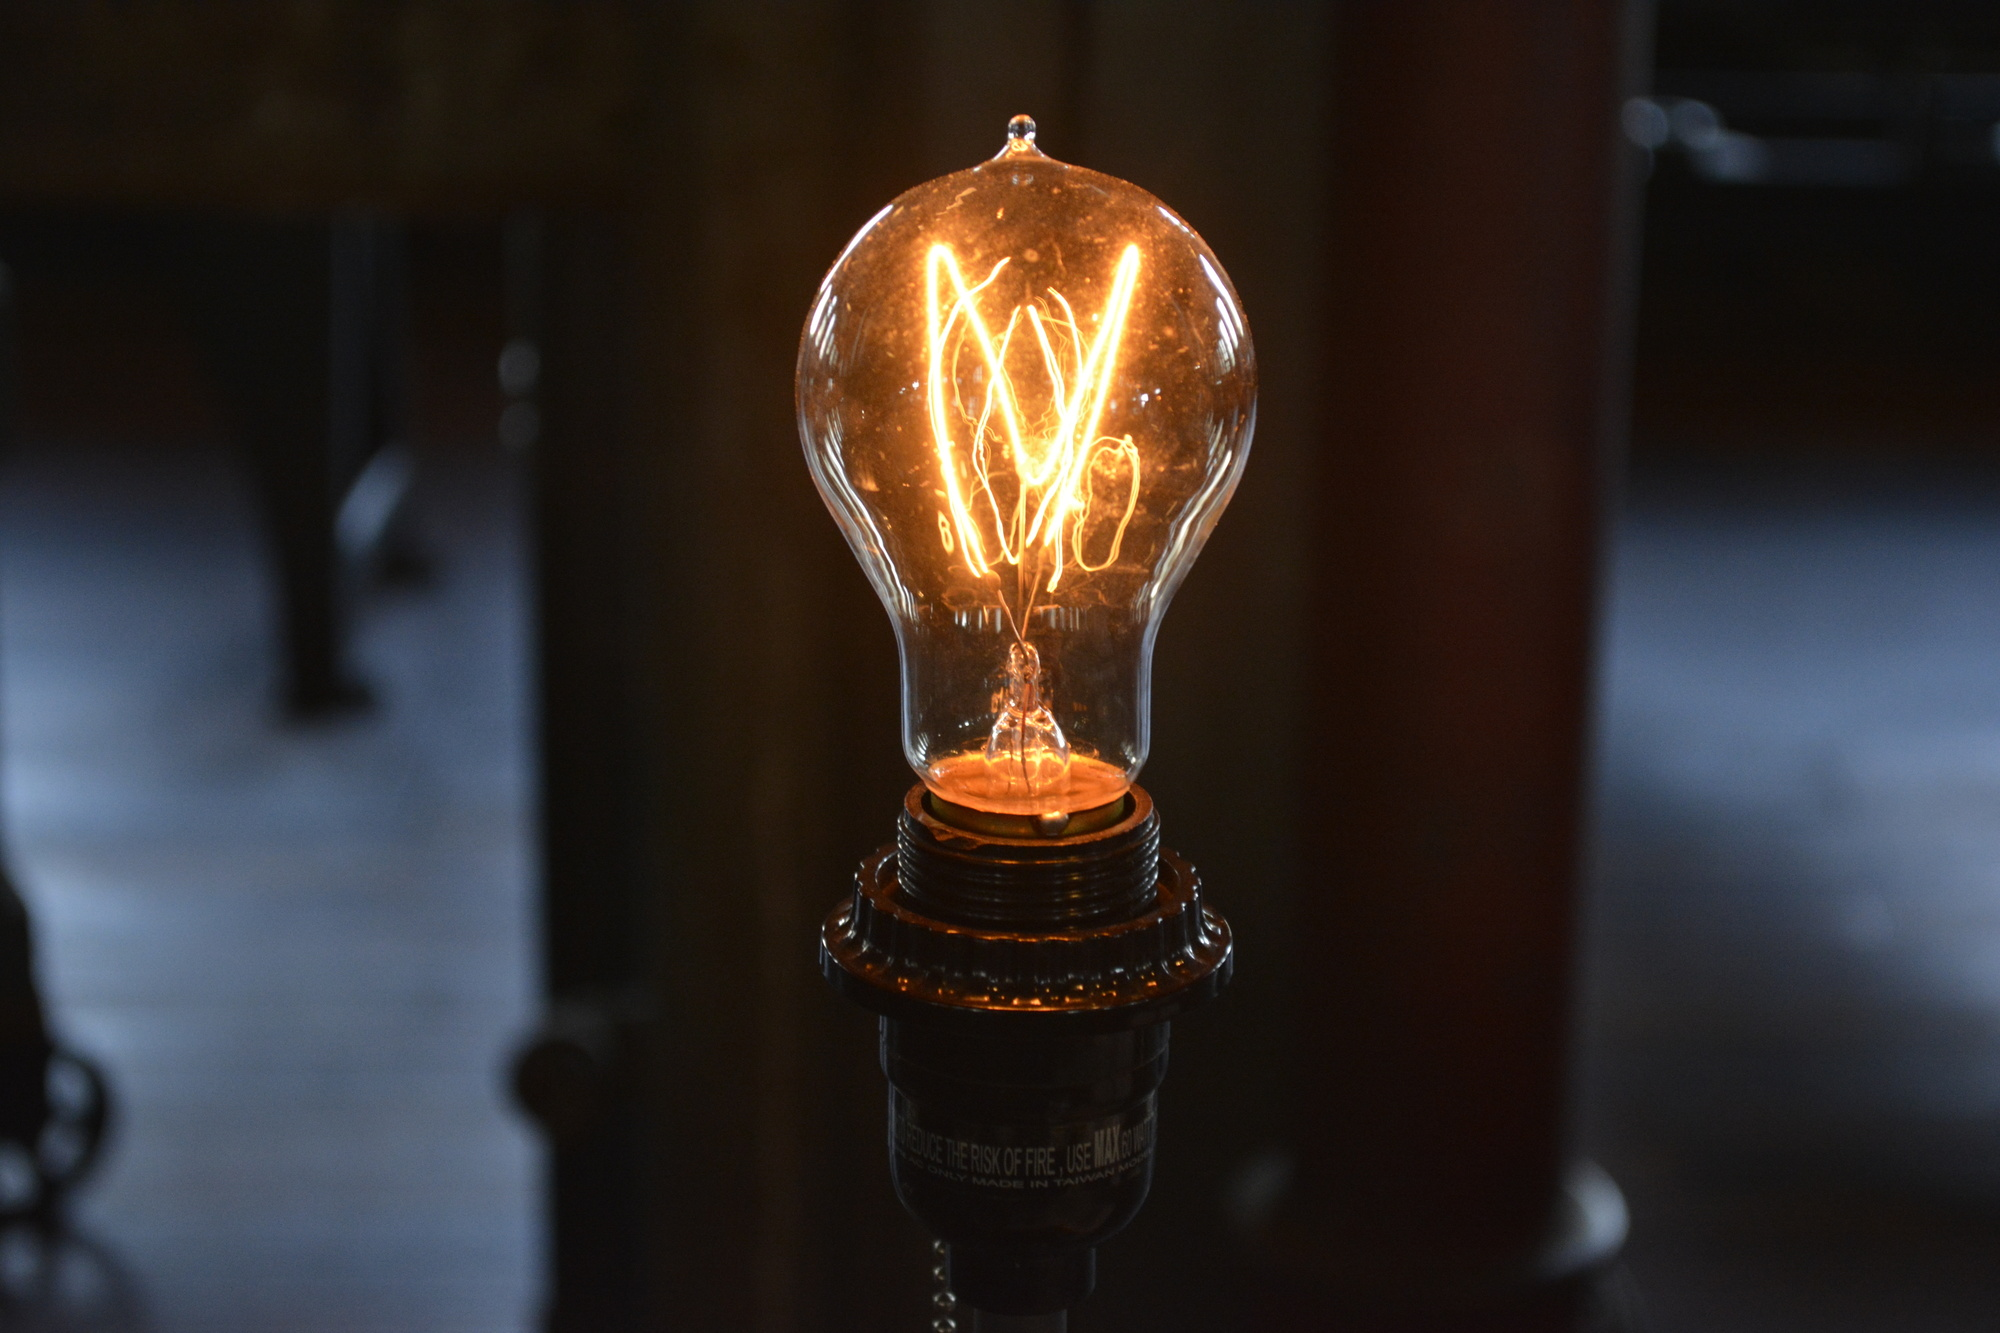 Thomas Edison Patents: The Lightbulb and Beyond